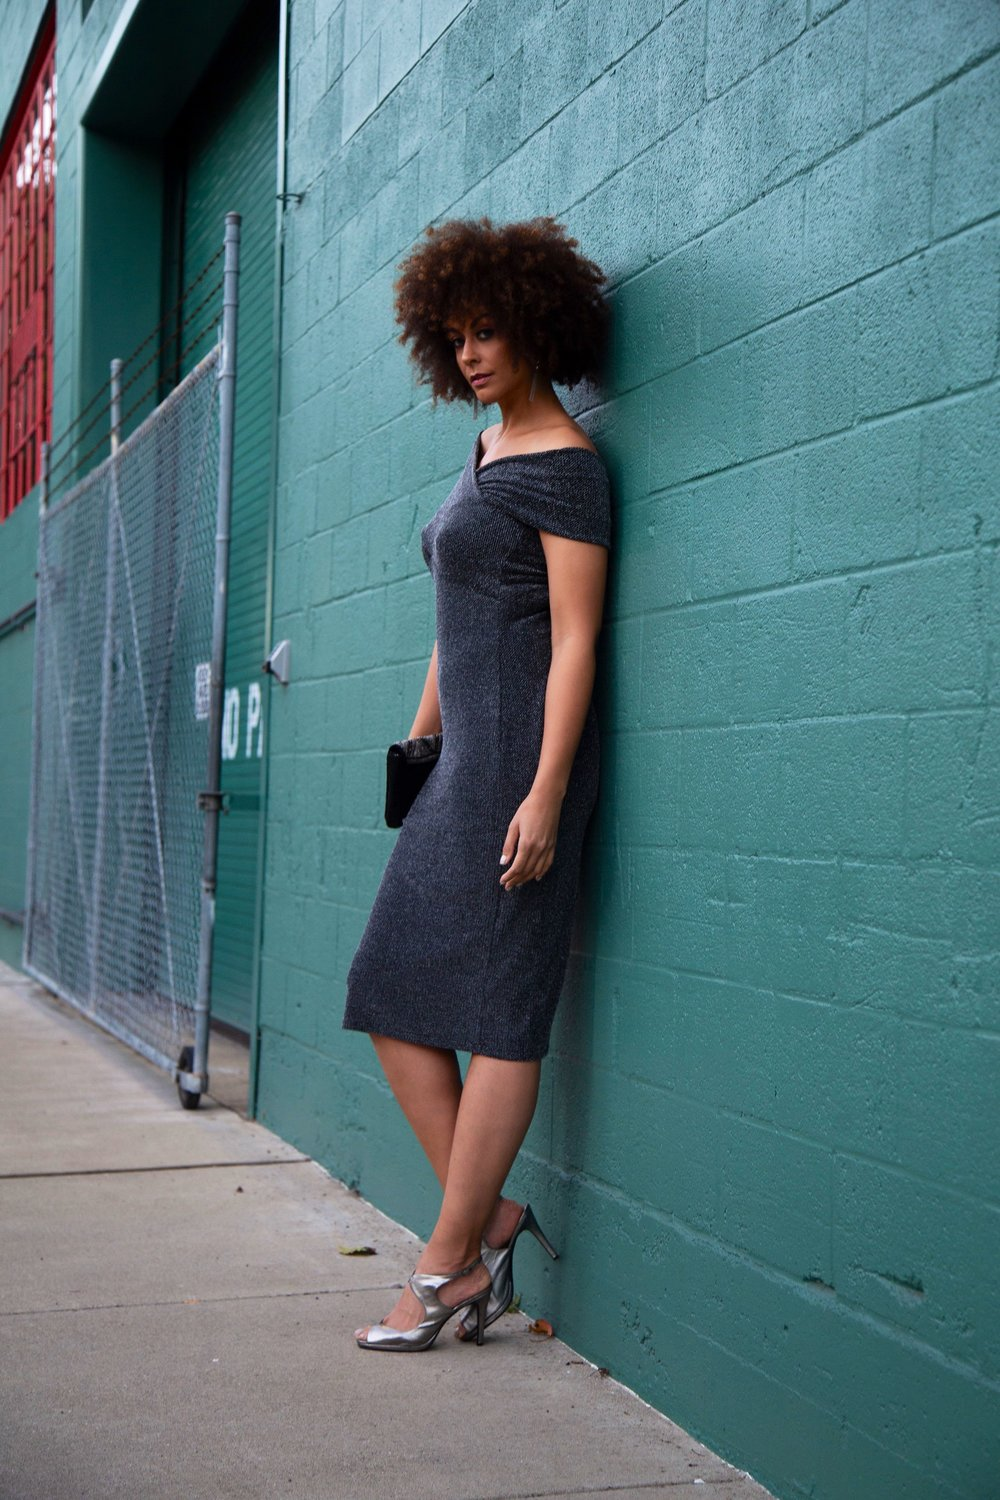 Multiway Dress - Long Tall Sally (shown in a size 10) / Shoes - Payless/Accessories - Forever21  Photos by  Lakeela Smith